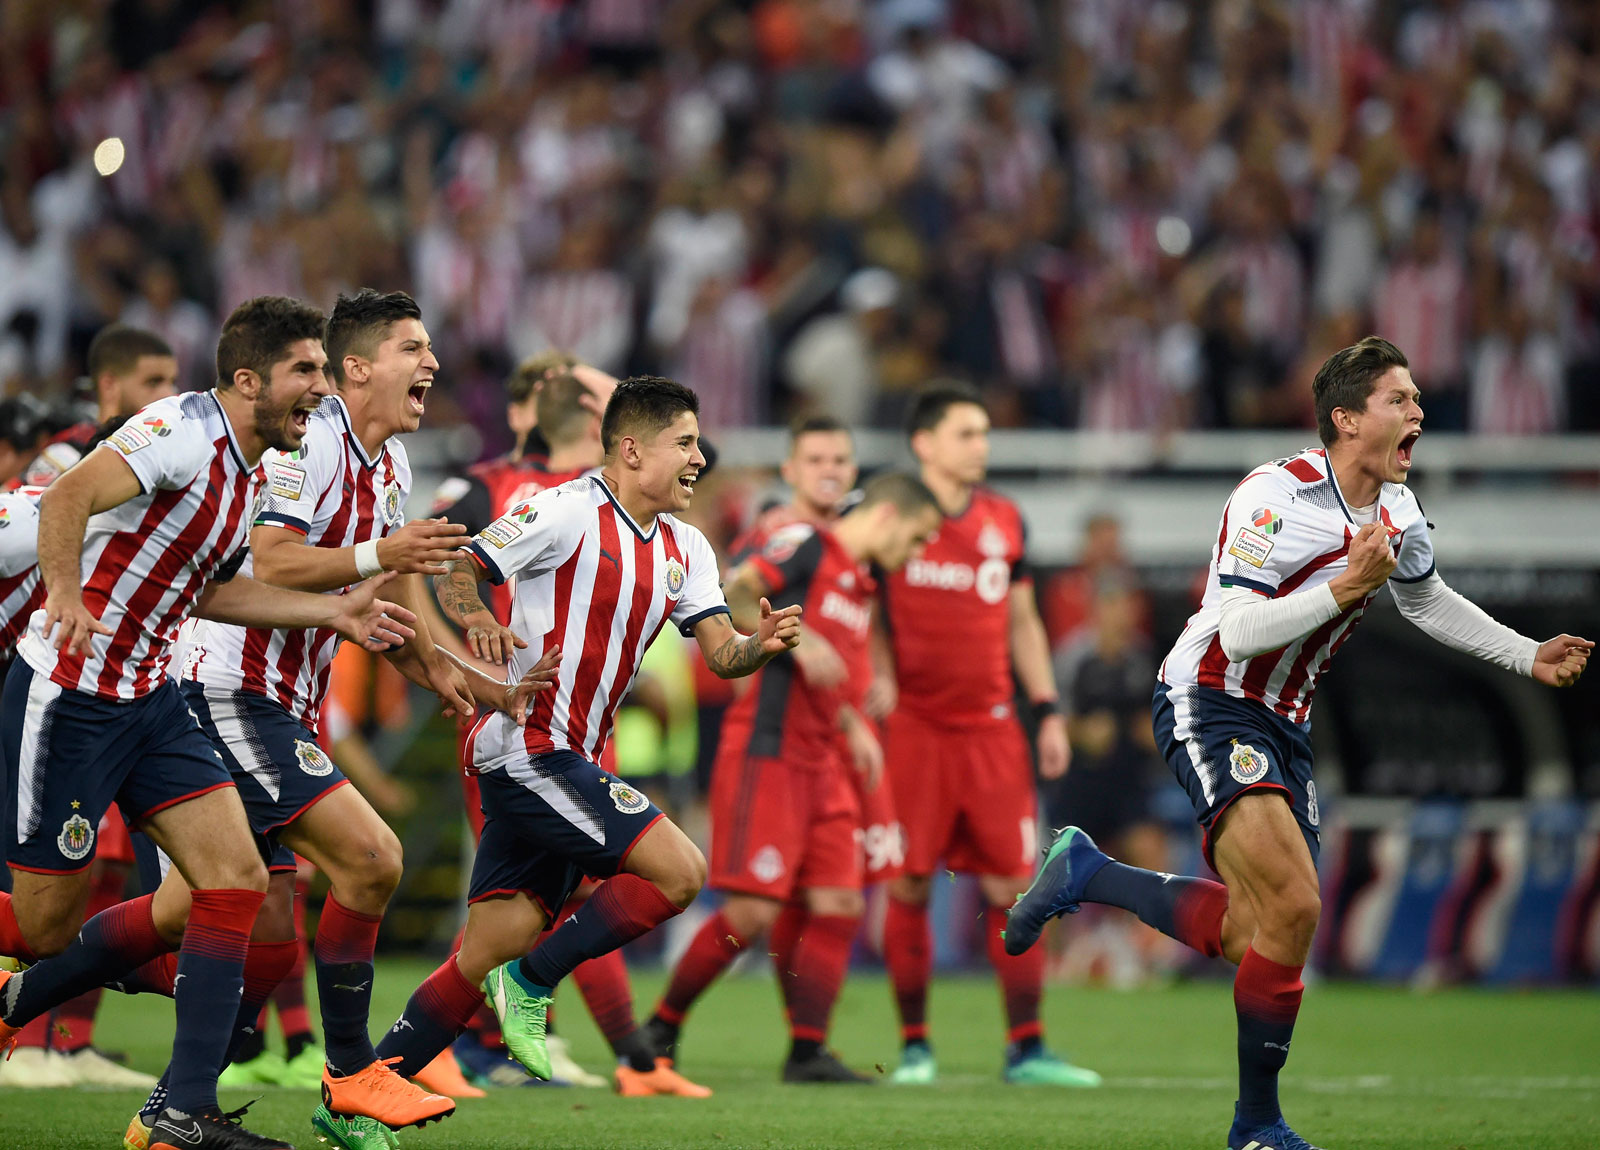 Chivas wins the 2018 CCL title on penalty kicks